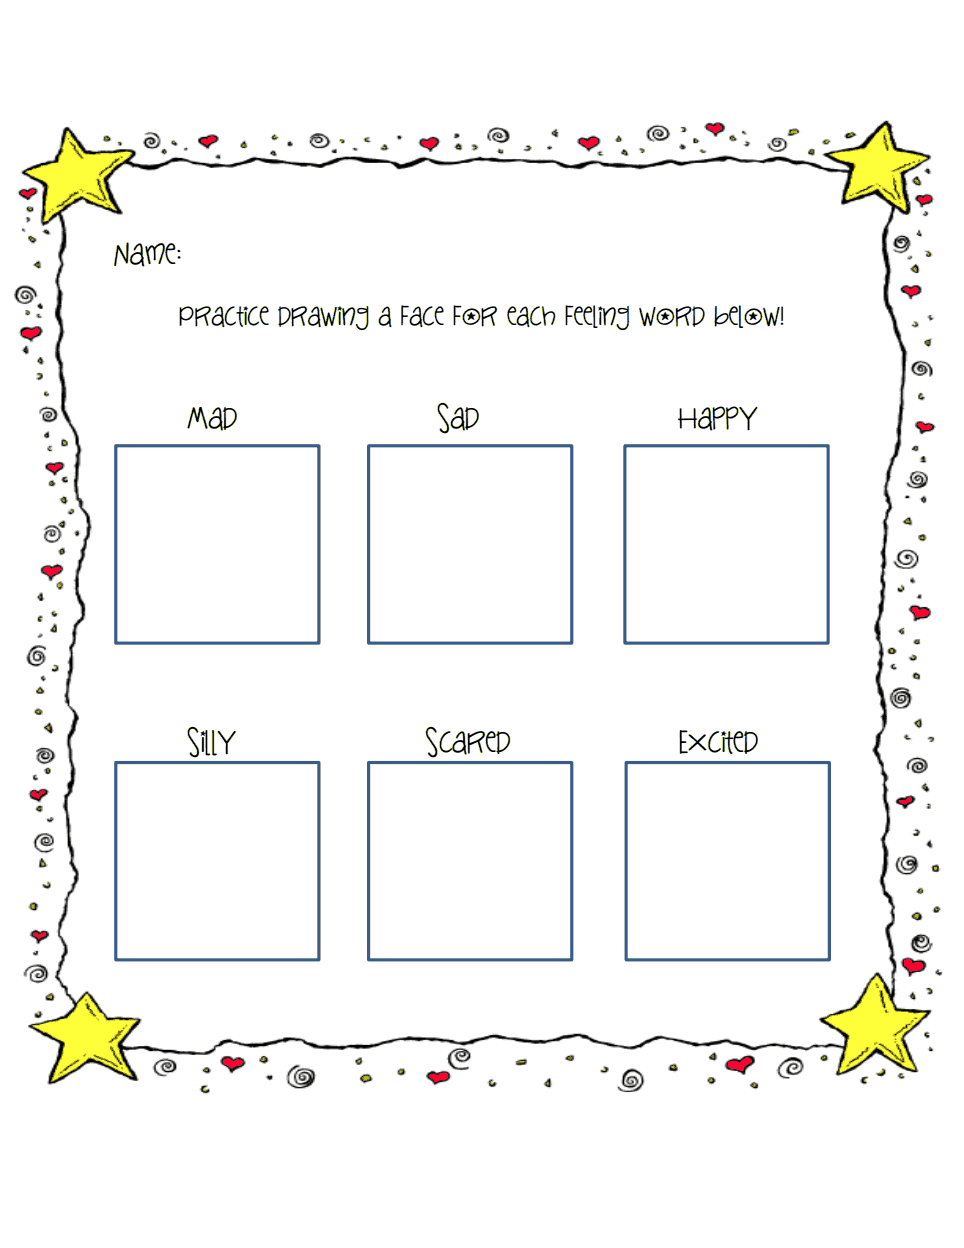 Today I Feel Silly Lesson Plan.pdf | Feelings/emotions | Pinterest